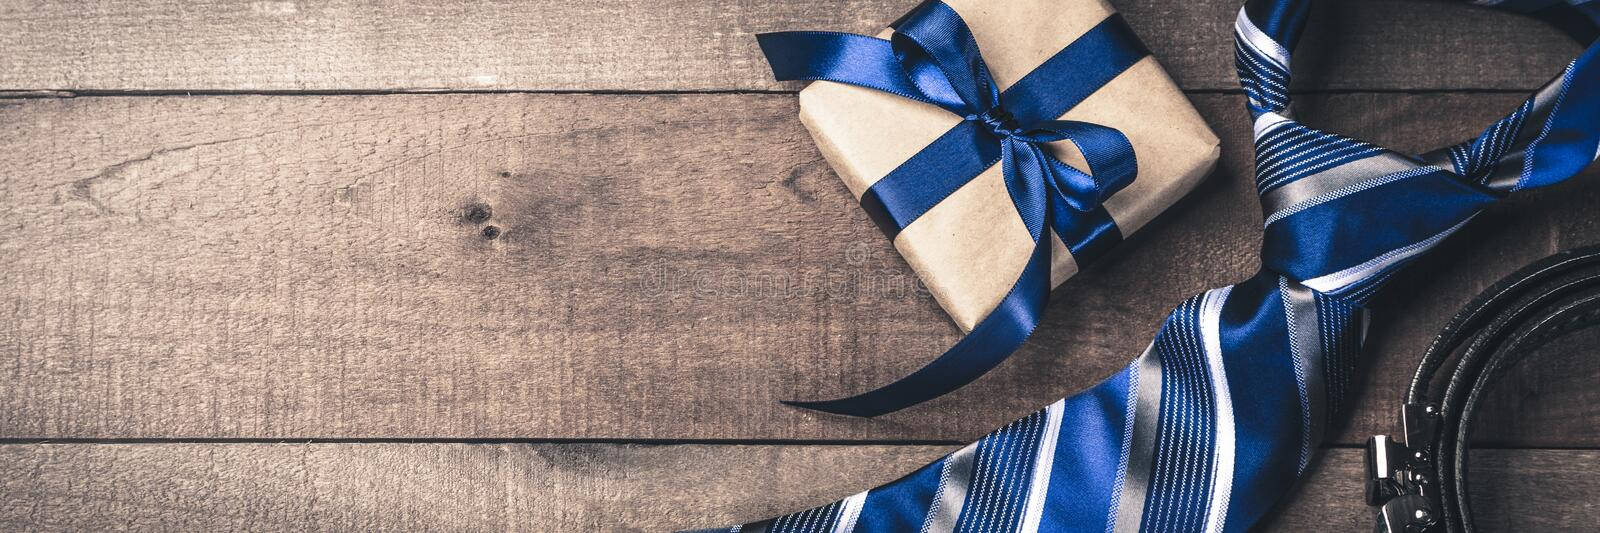 Tie Belt And Gift Box  On Wooden Table royalty free stock photo